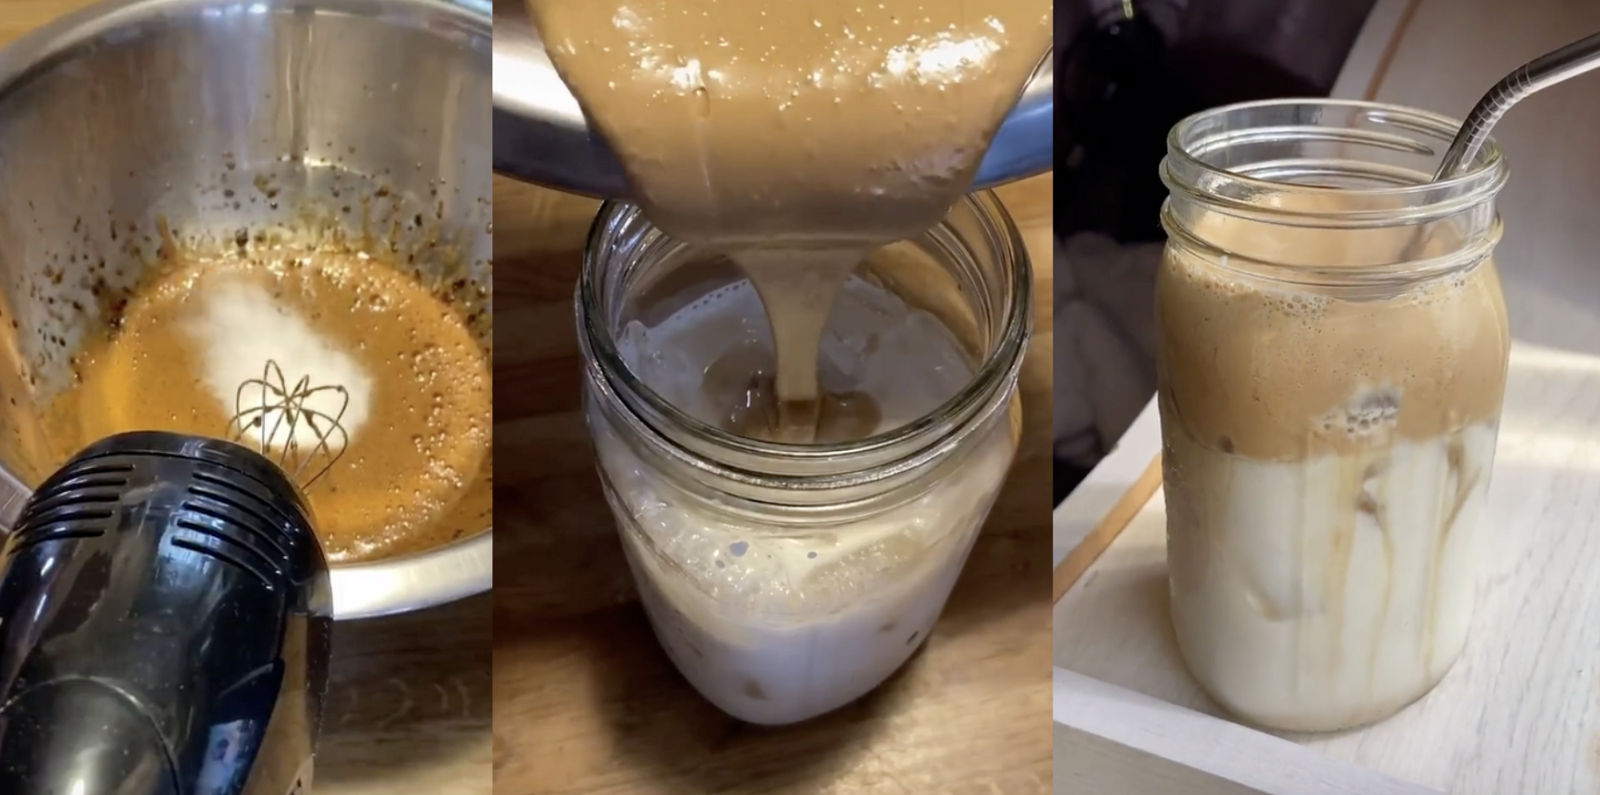 So Many People On TikTok Are Making 'Creamy Coffee' And It